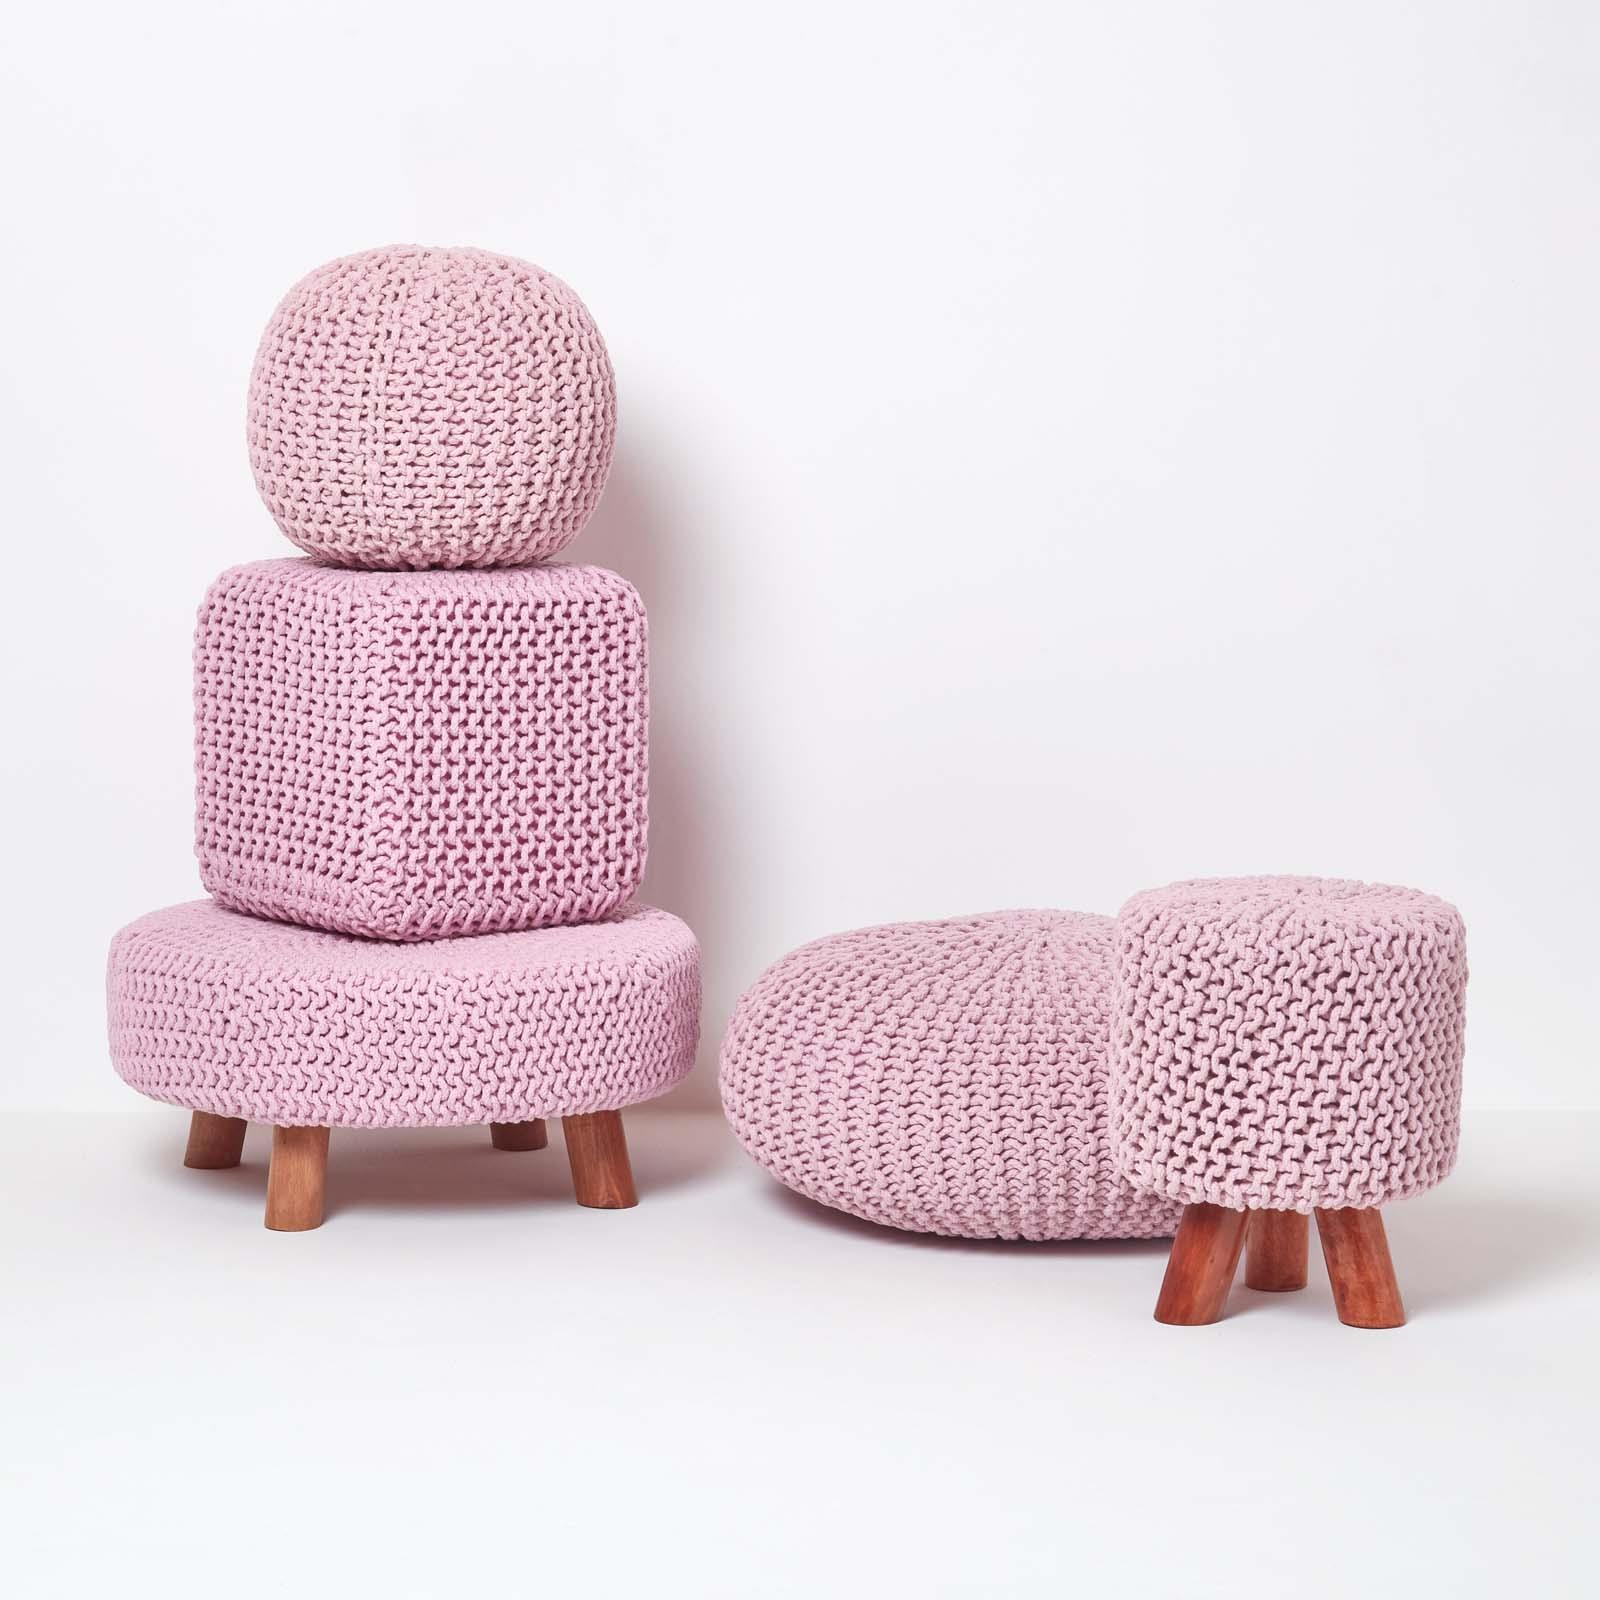 Hand-Knitted-100-Cotton-Pouffes-Round-Sphere-Or-Cube-Square-Chunky-Footstools thumbnail 149